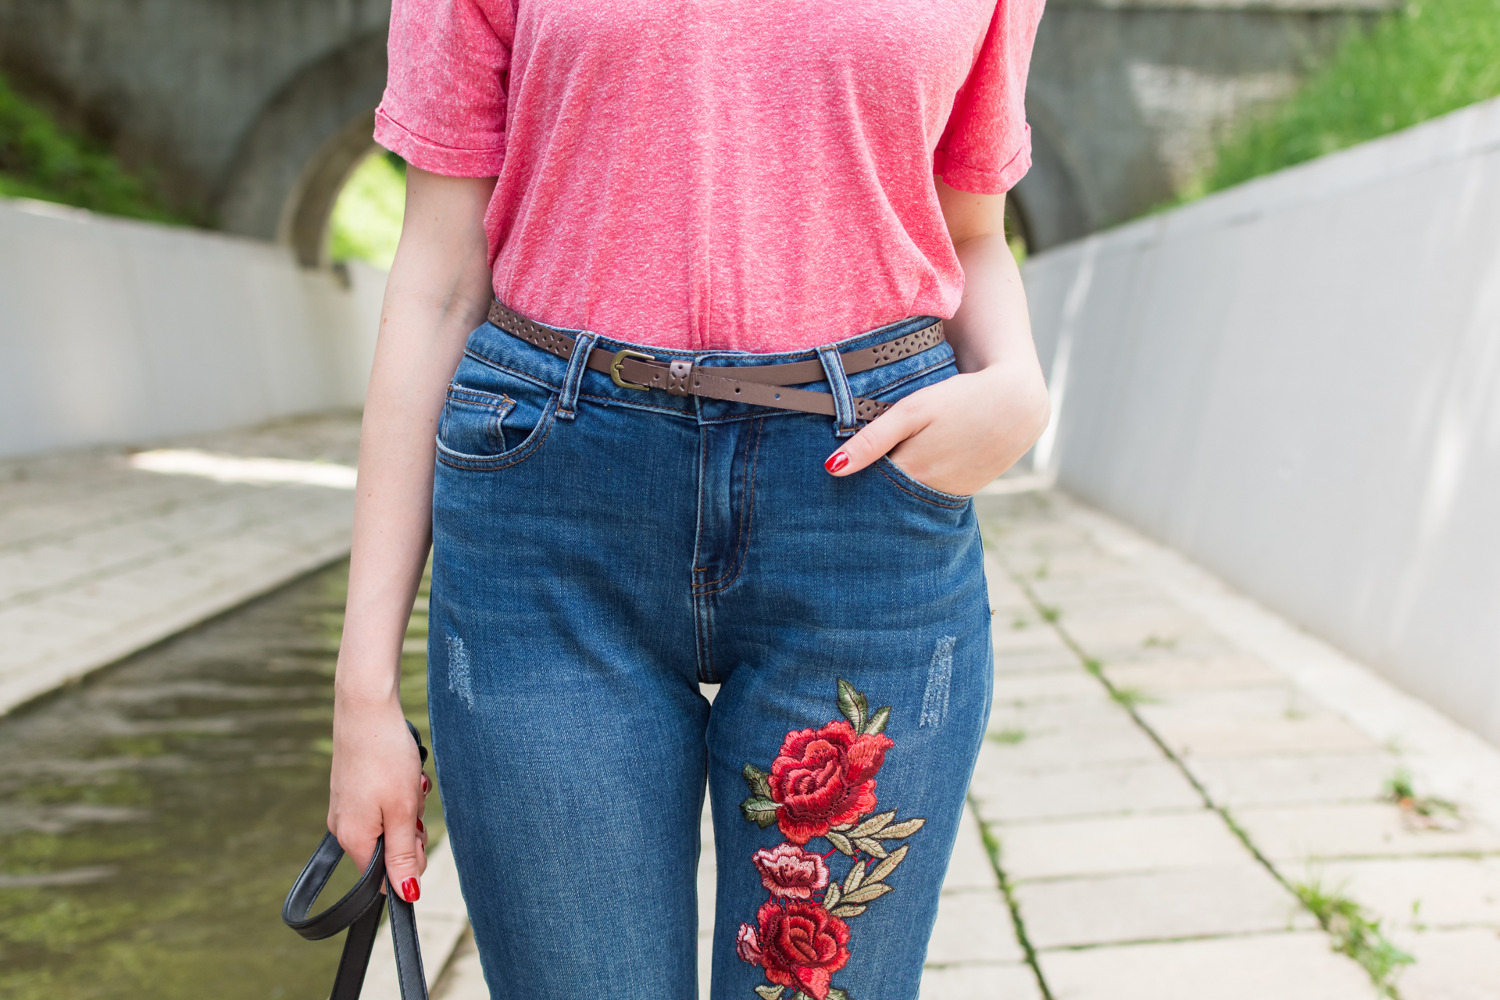 DIY_embroidery_jeans_Zalabell_creative_6